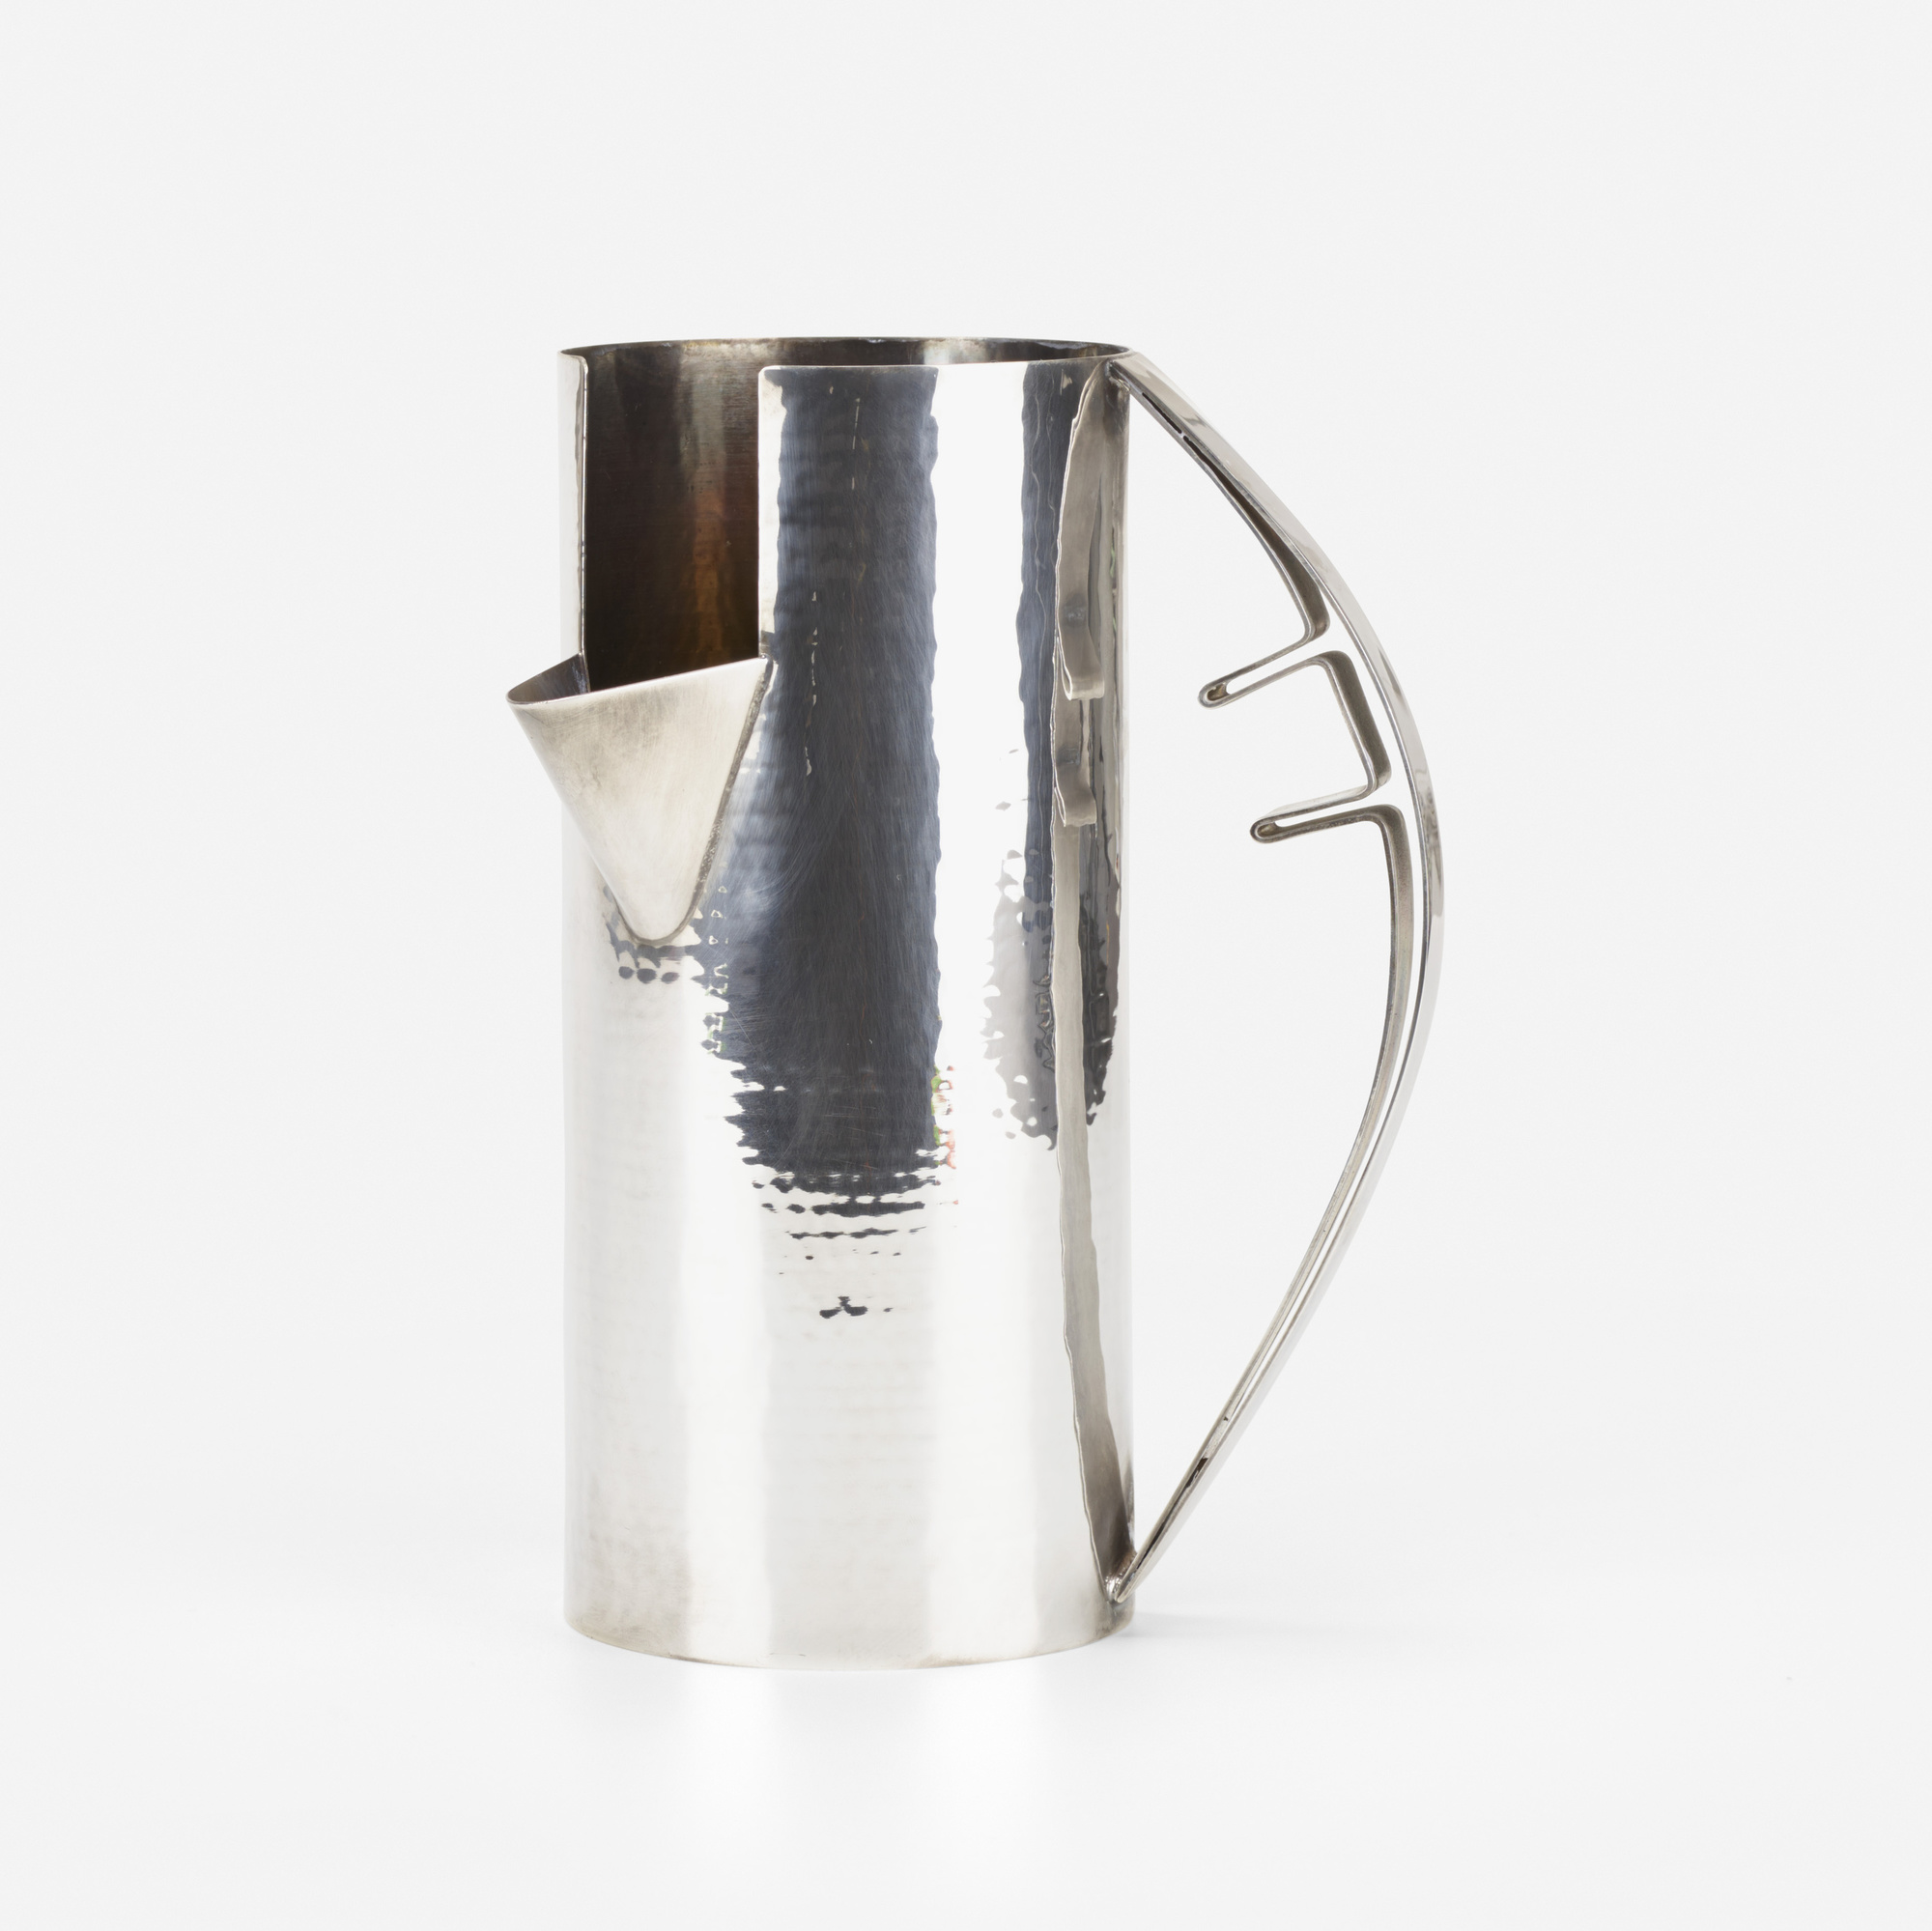 313: Carlo Scarpa / pitcher (1 of 3)